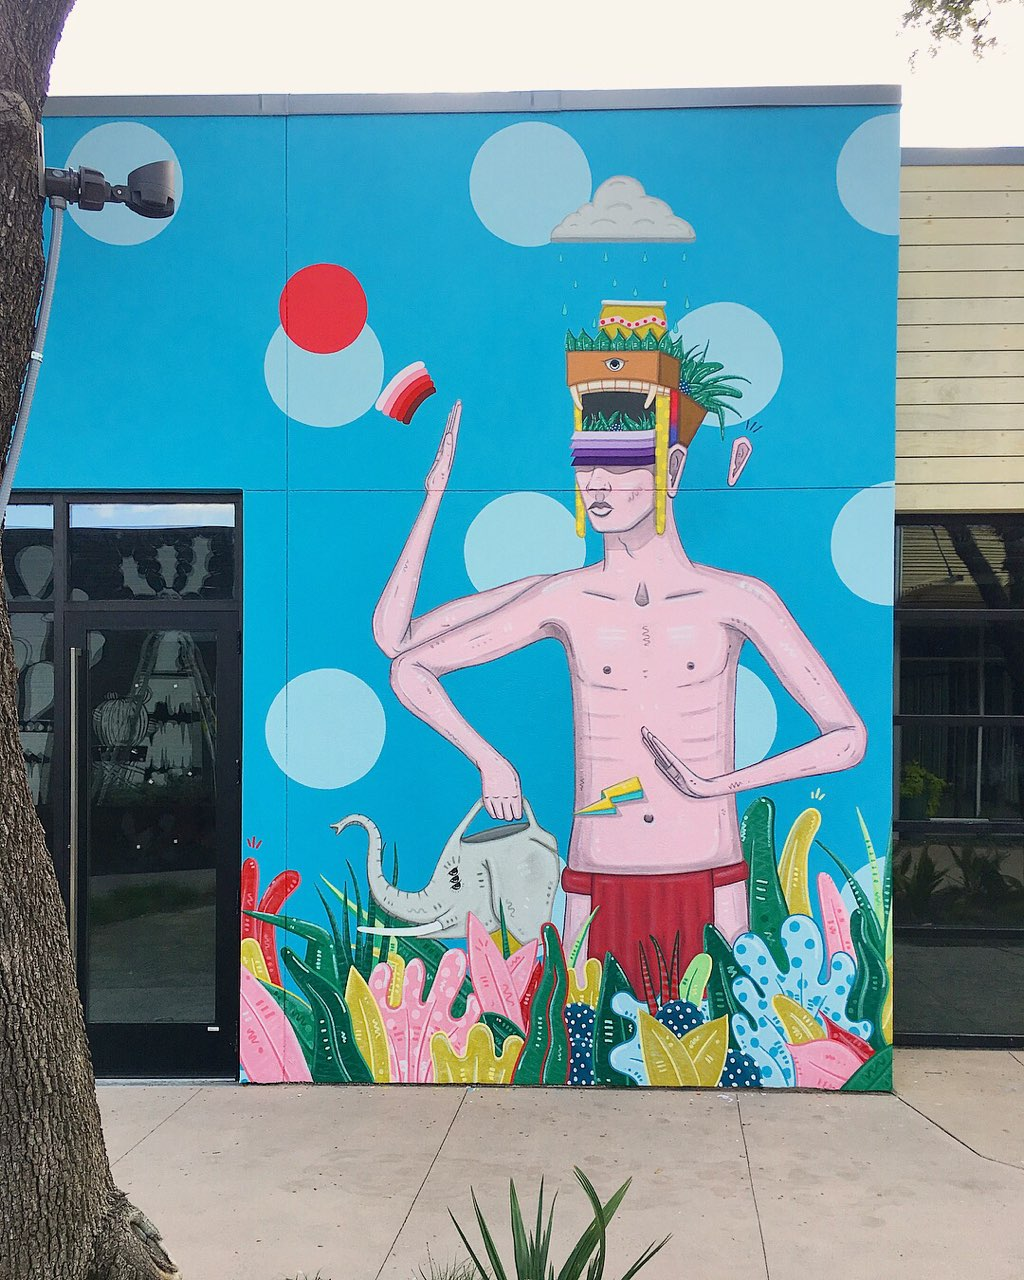 Drigo mural at The Hill Shopping Center in Dallas, Texas off of Walnut Hill